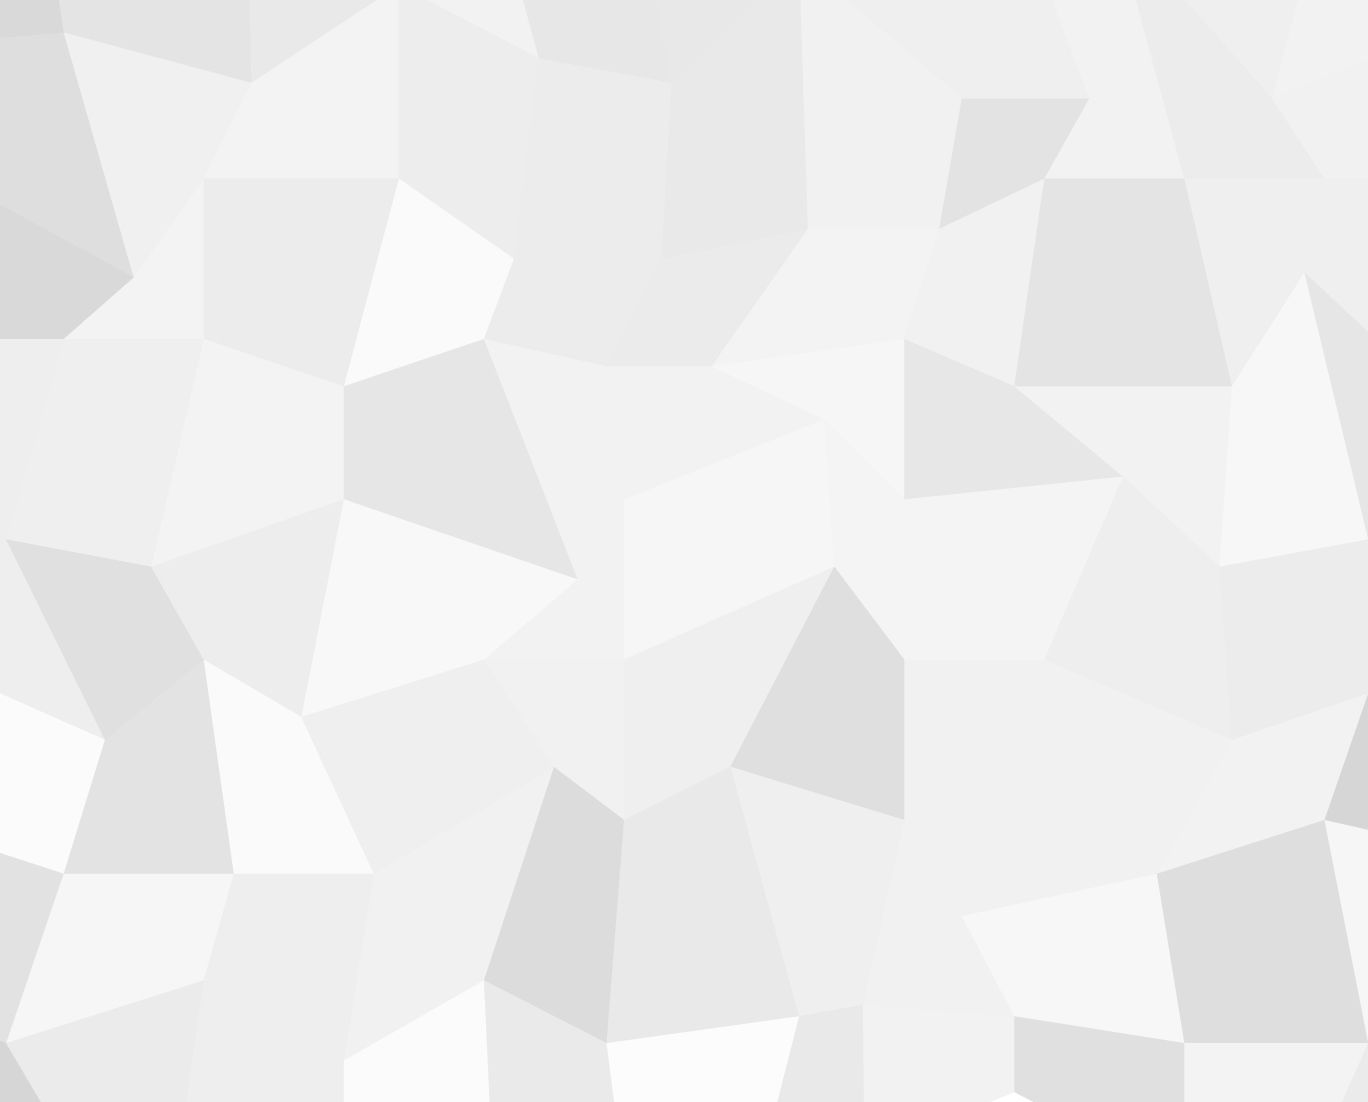 Abstract Background Design In Tones Of Gray Made From Polygonal